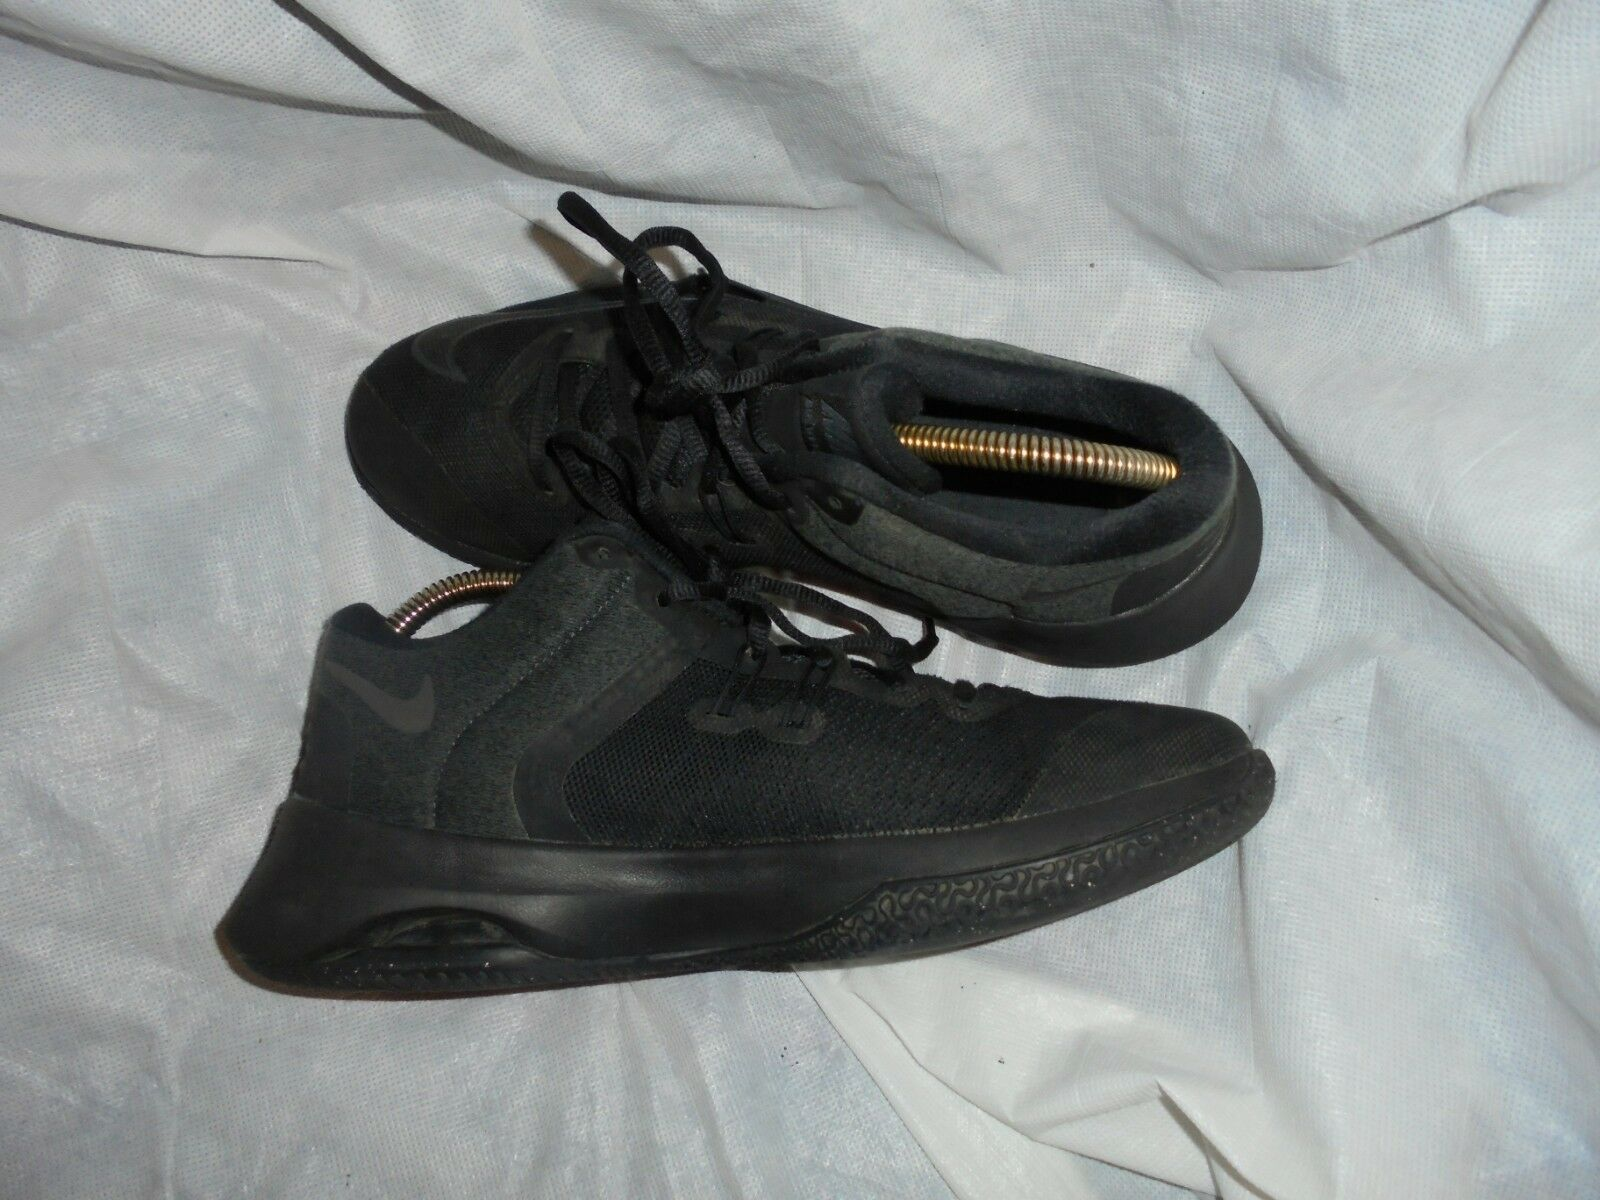 NIKE NIKE NIKE AIR VERSITILE II homme noir LEATHER LACE UP TRAINER Taille7 EU 41 US 8 VGC c10ecf